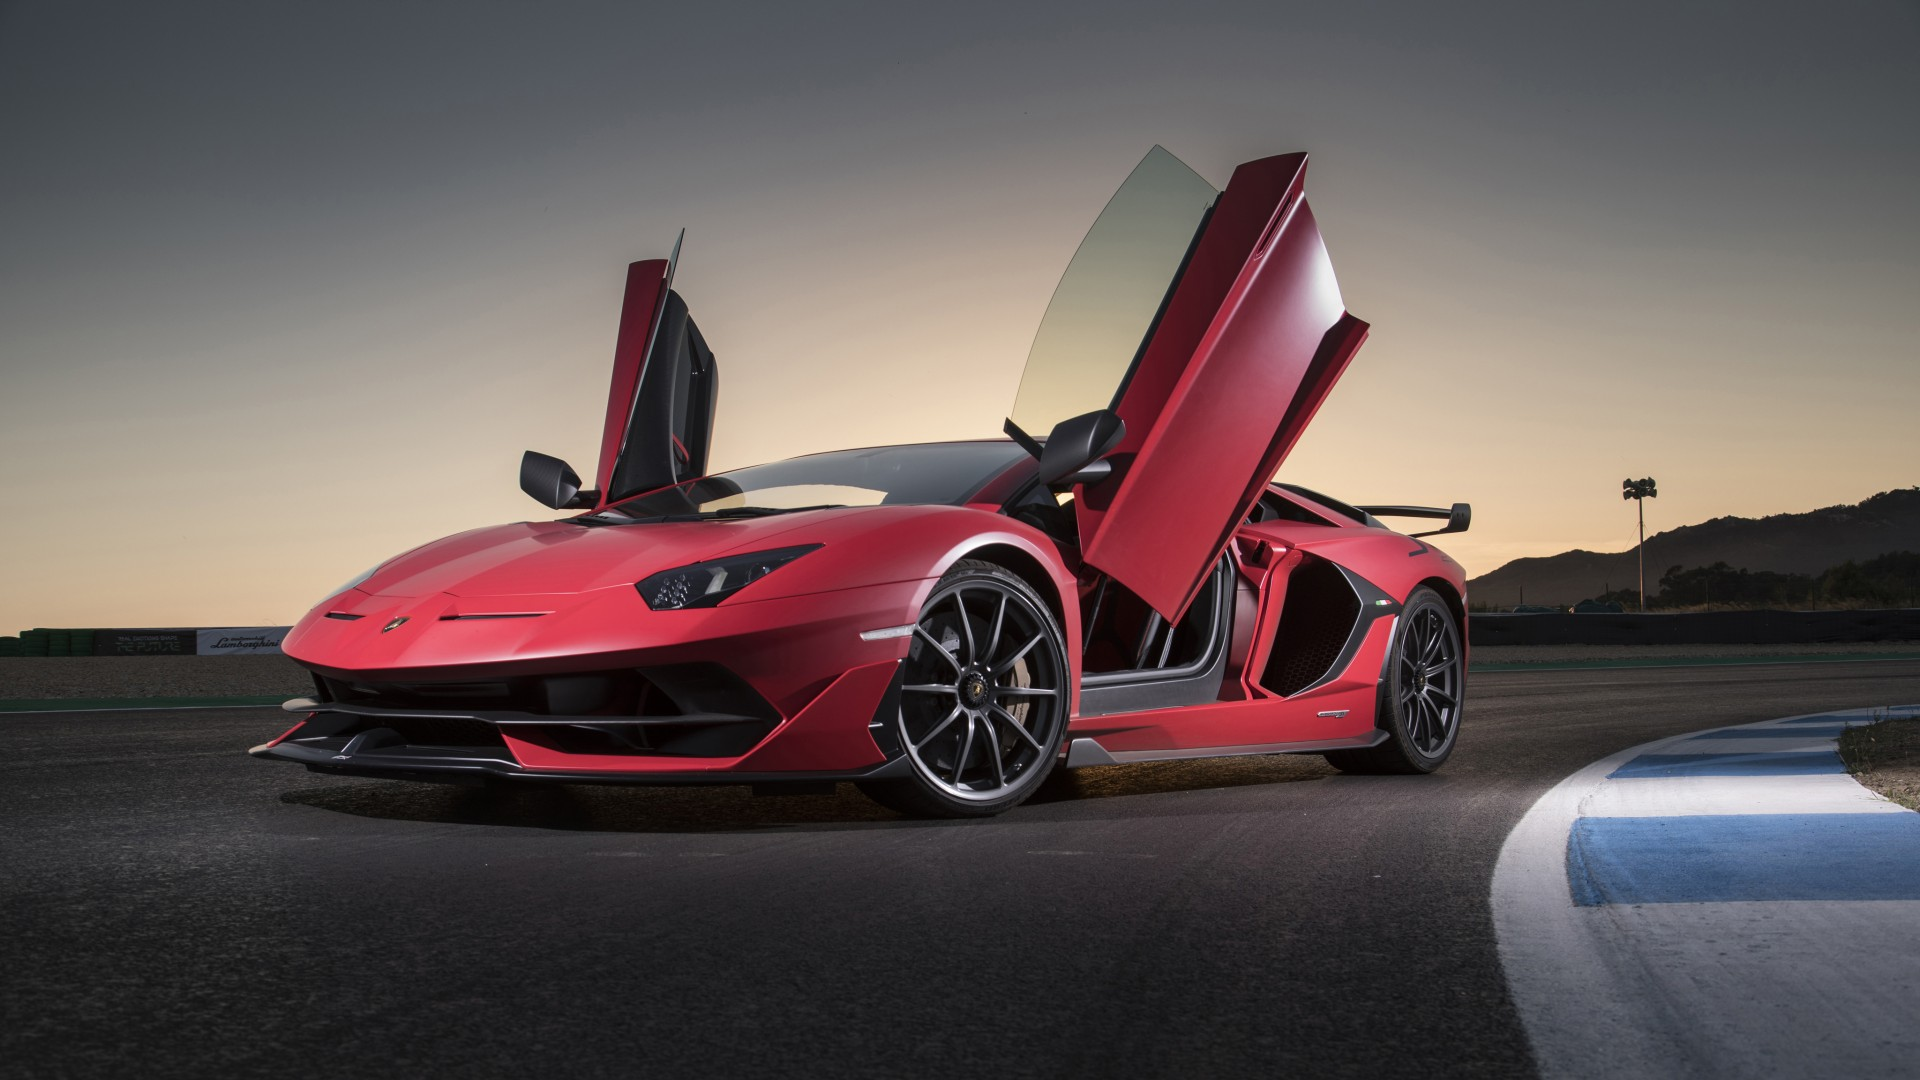 Lamborghini Aventador SVJ 2018 4K 2 Wallpaper | HD Car ...